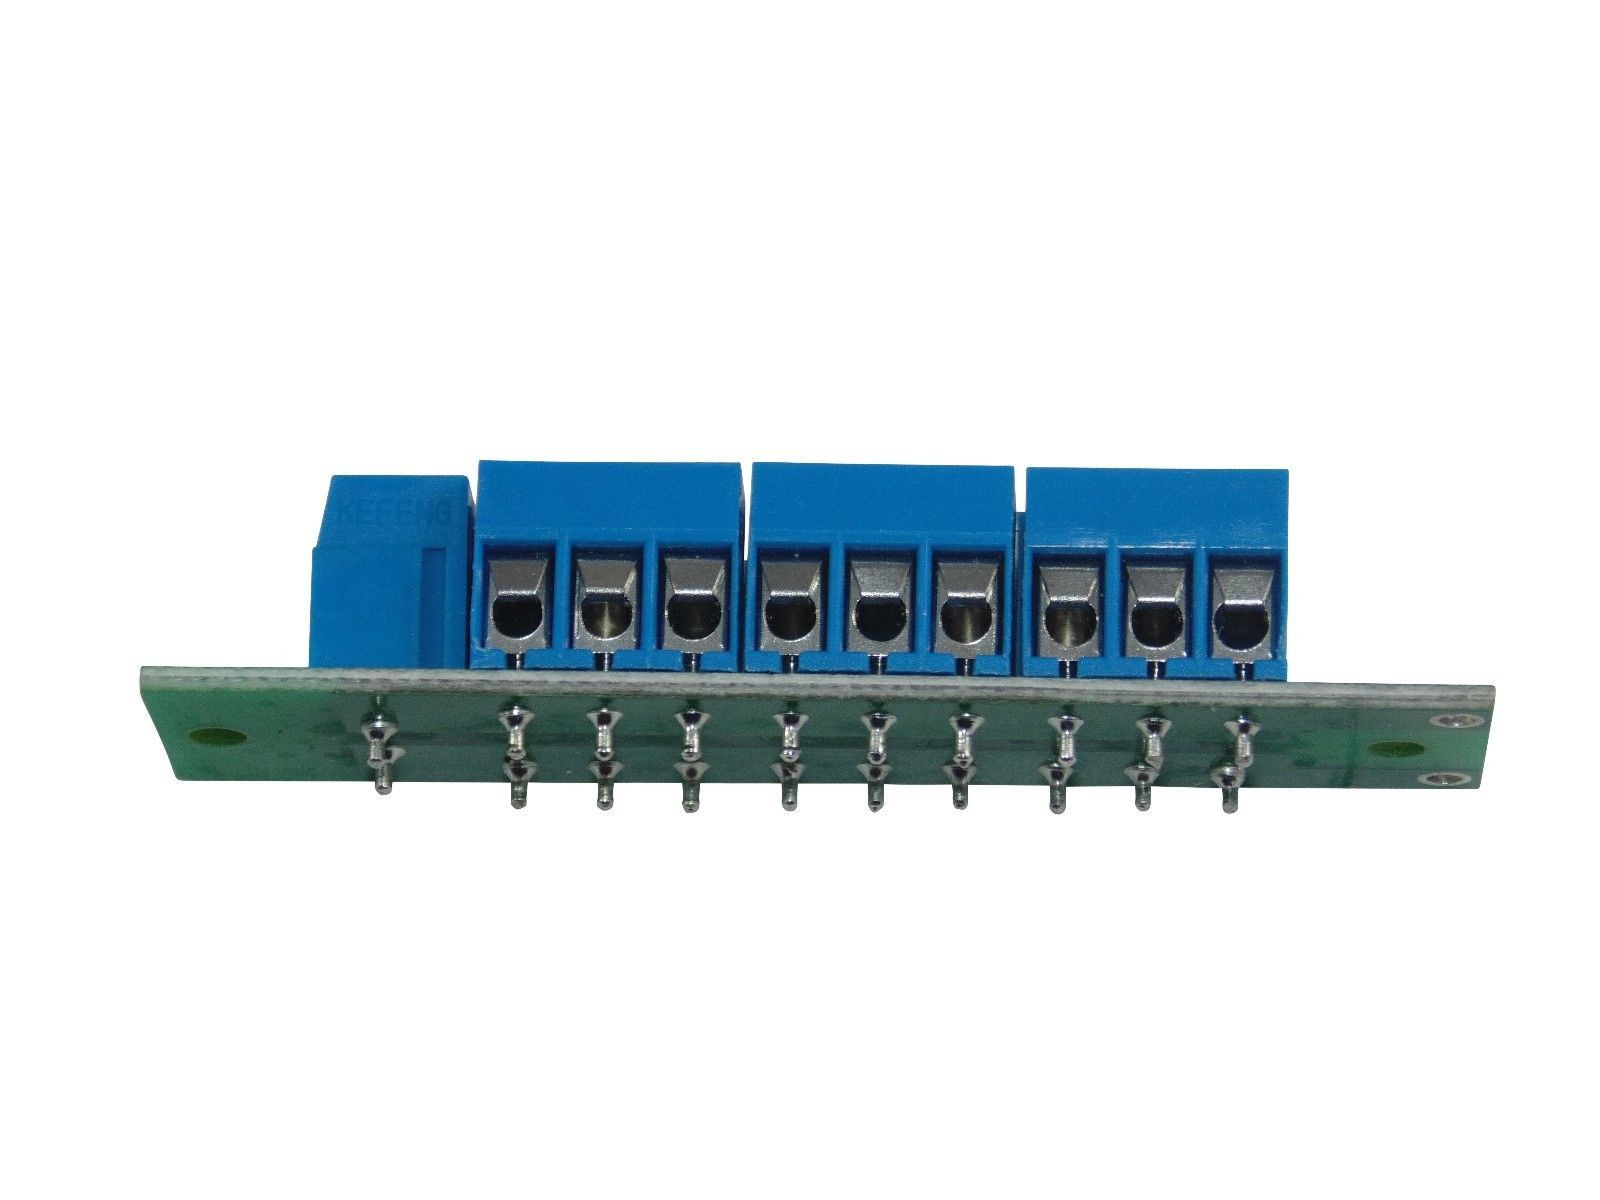 Model Railway Power Distribution Board DCC or DC compatible with mounting  kit